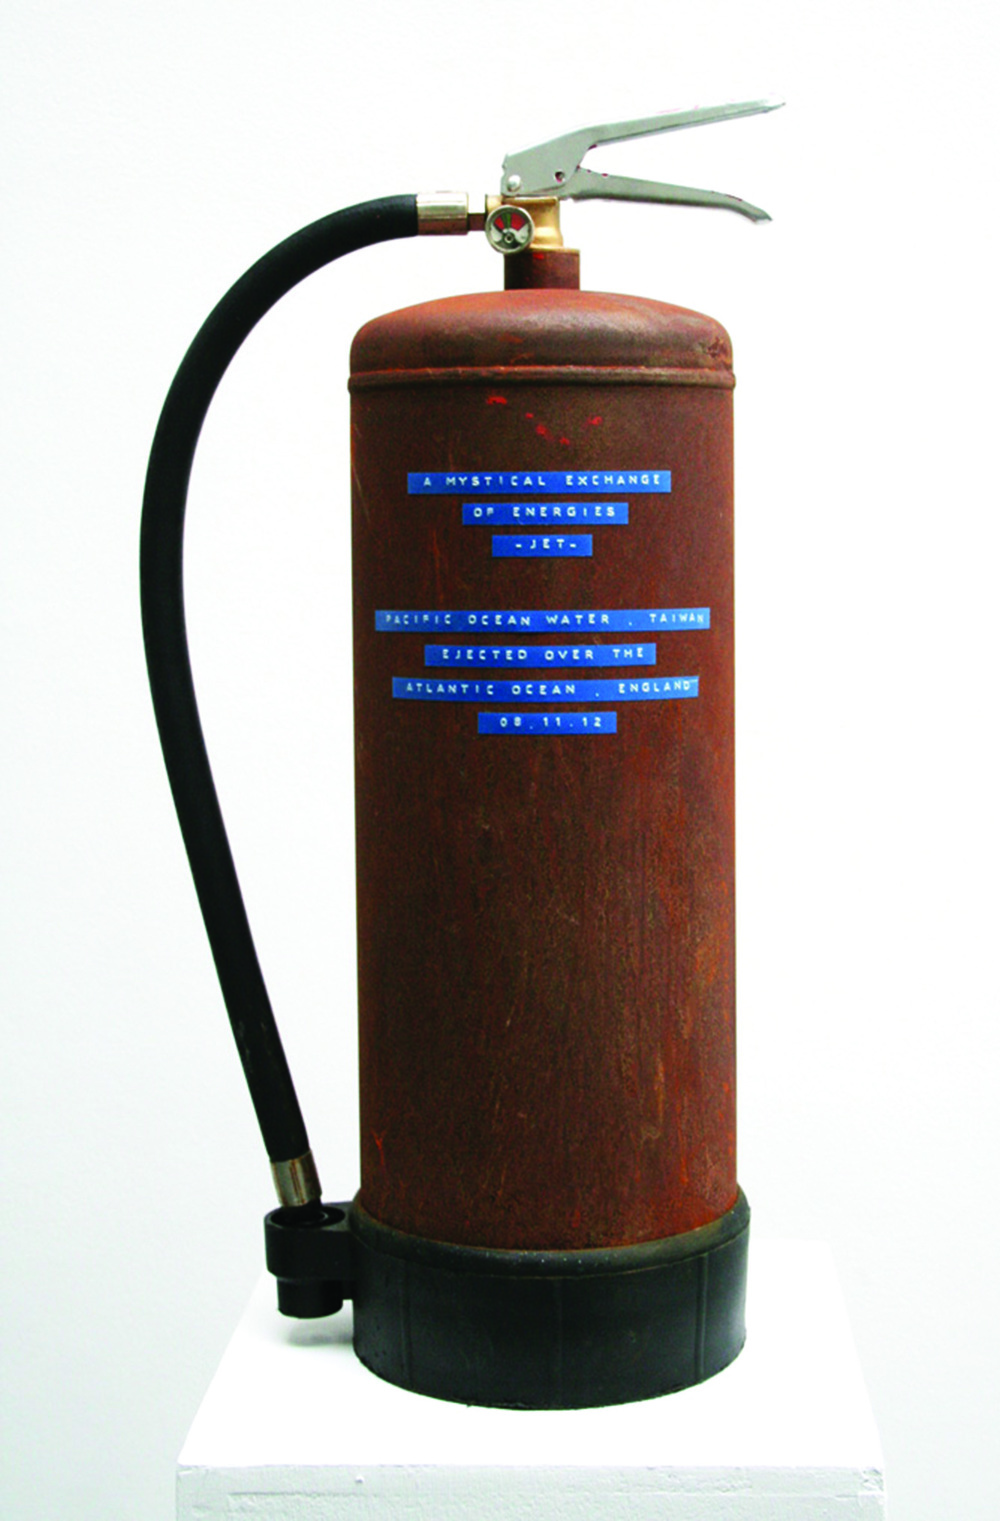 jet spray installation image 2 print.jpg